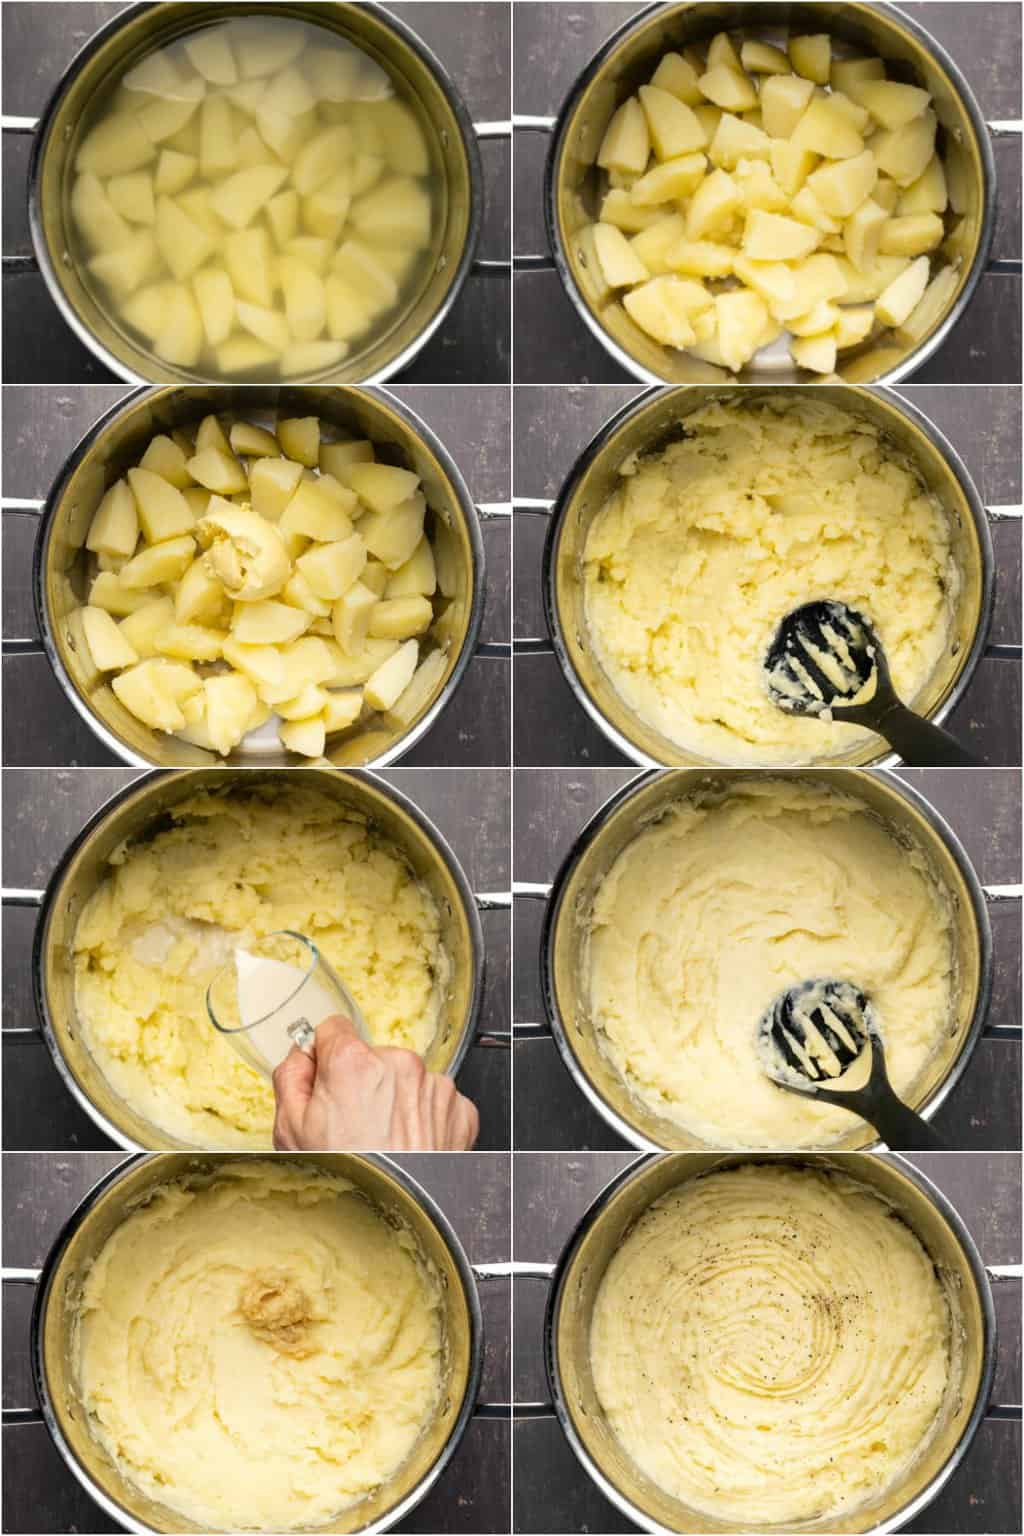 Step by step process photo collage of making vegan mashed potatoes.